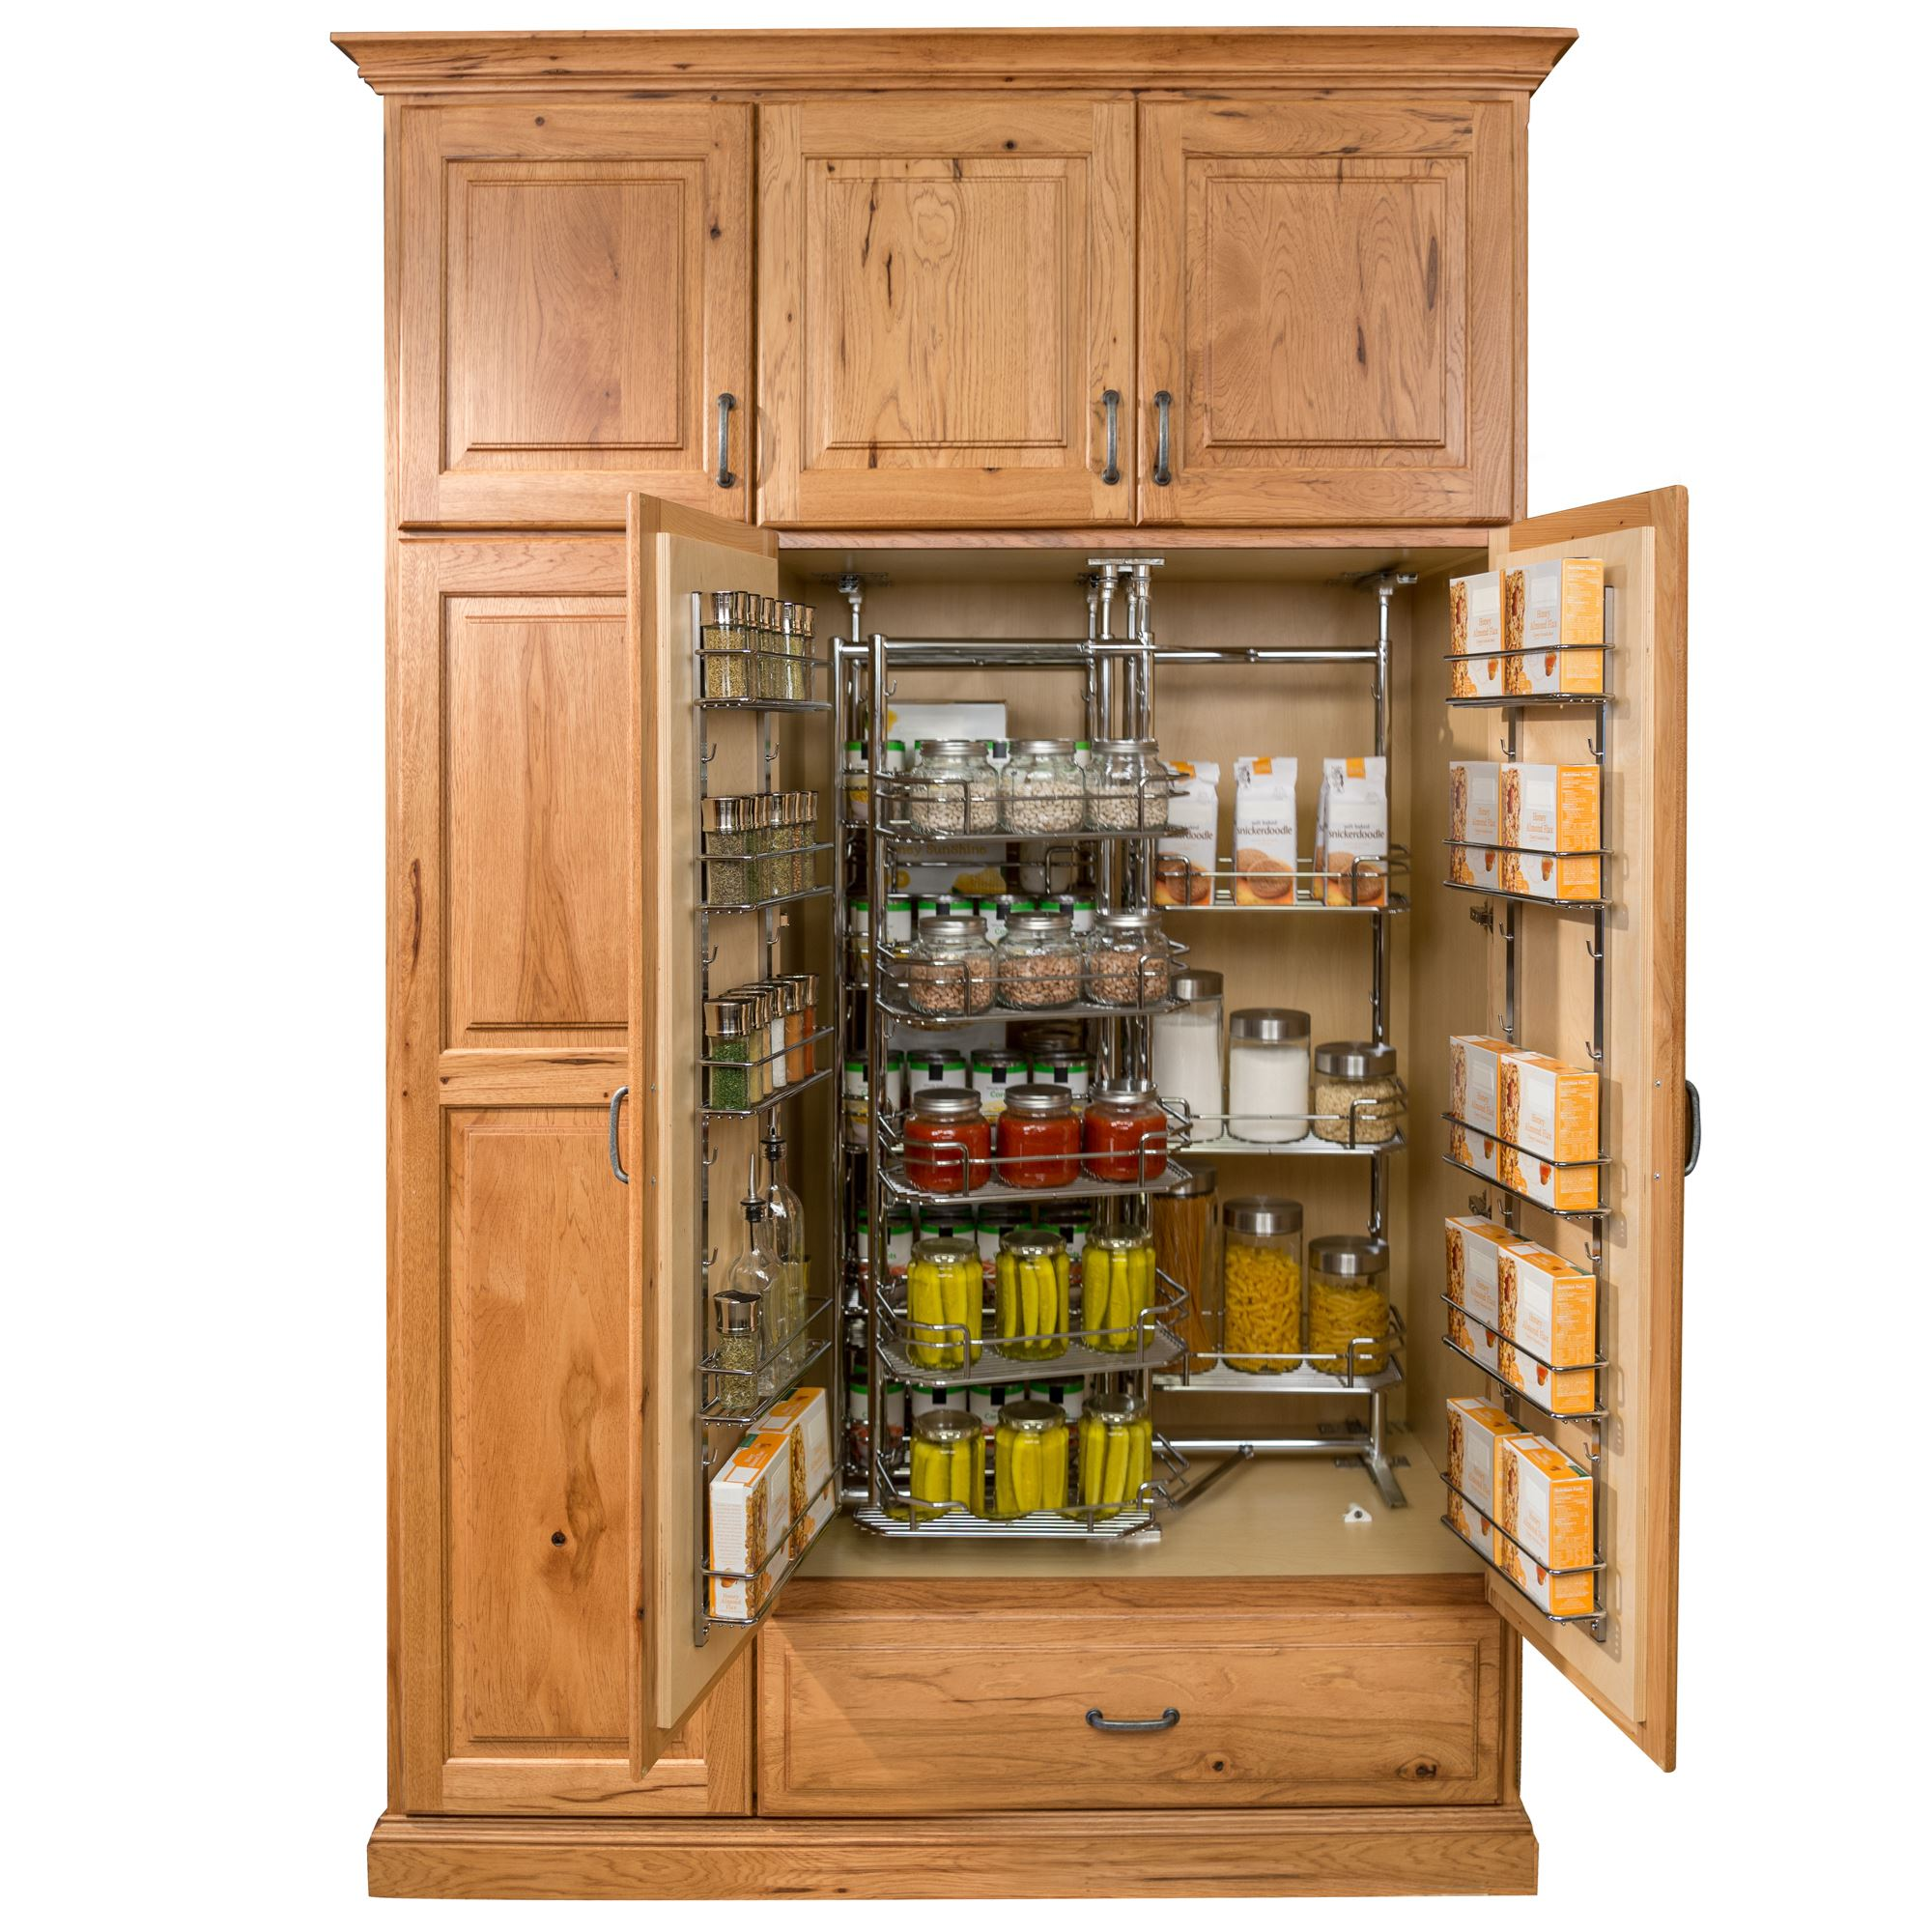 Pantry And Food Storage Solutions Custom Wood Kitchen Cabinet Pull Out Cutting Board Hardware